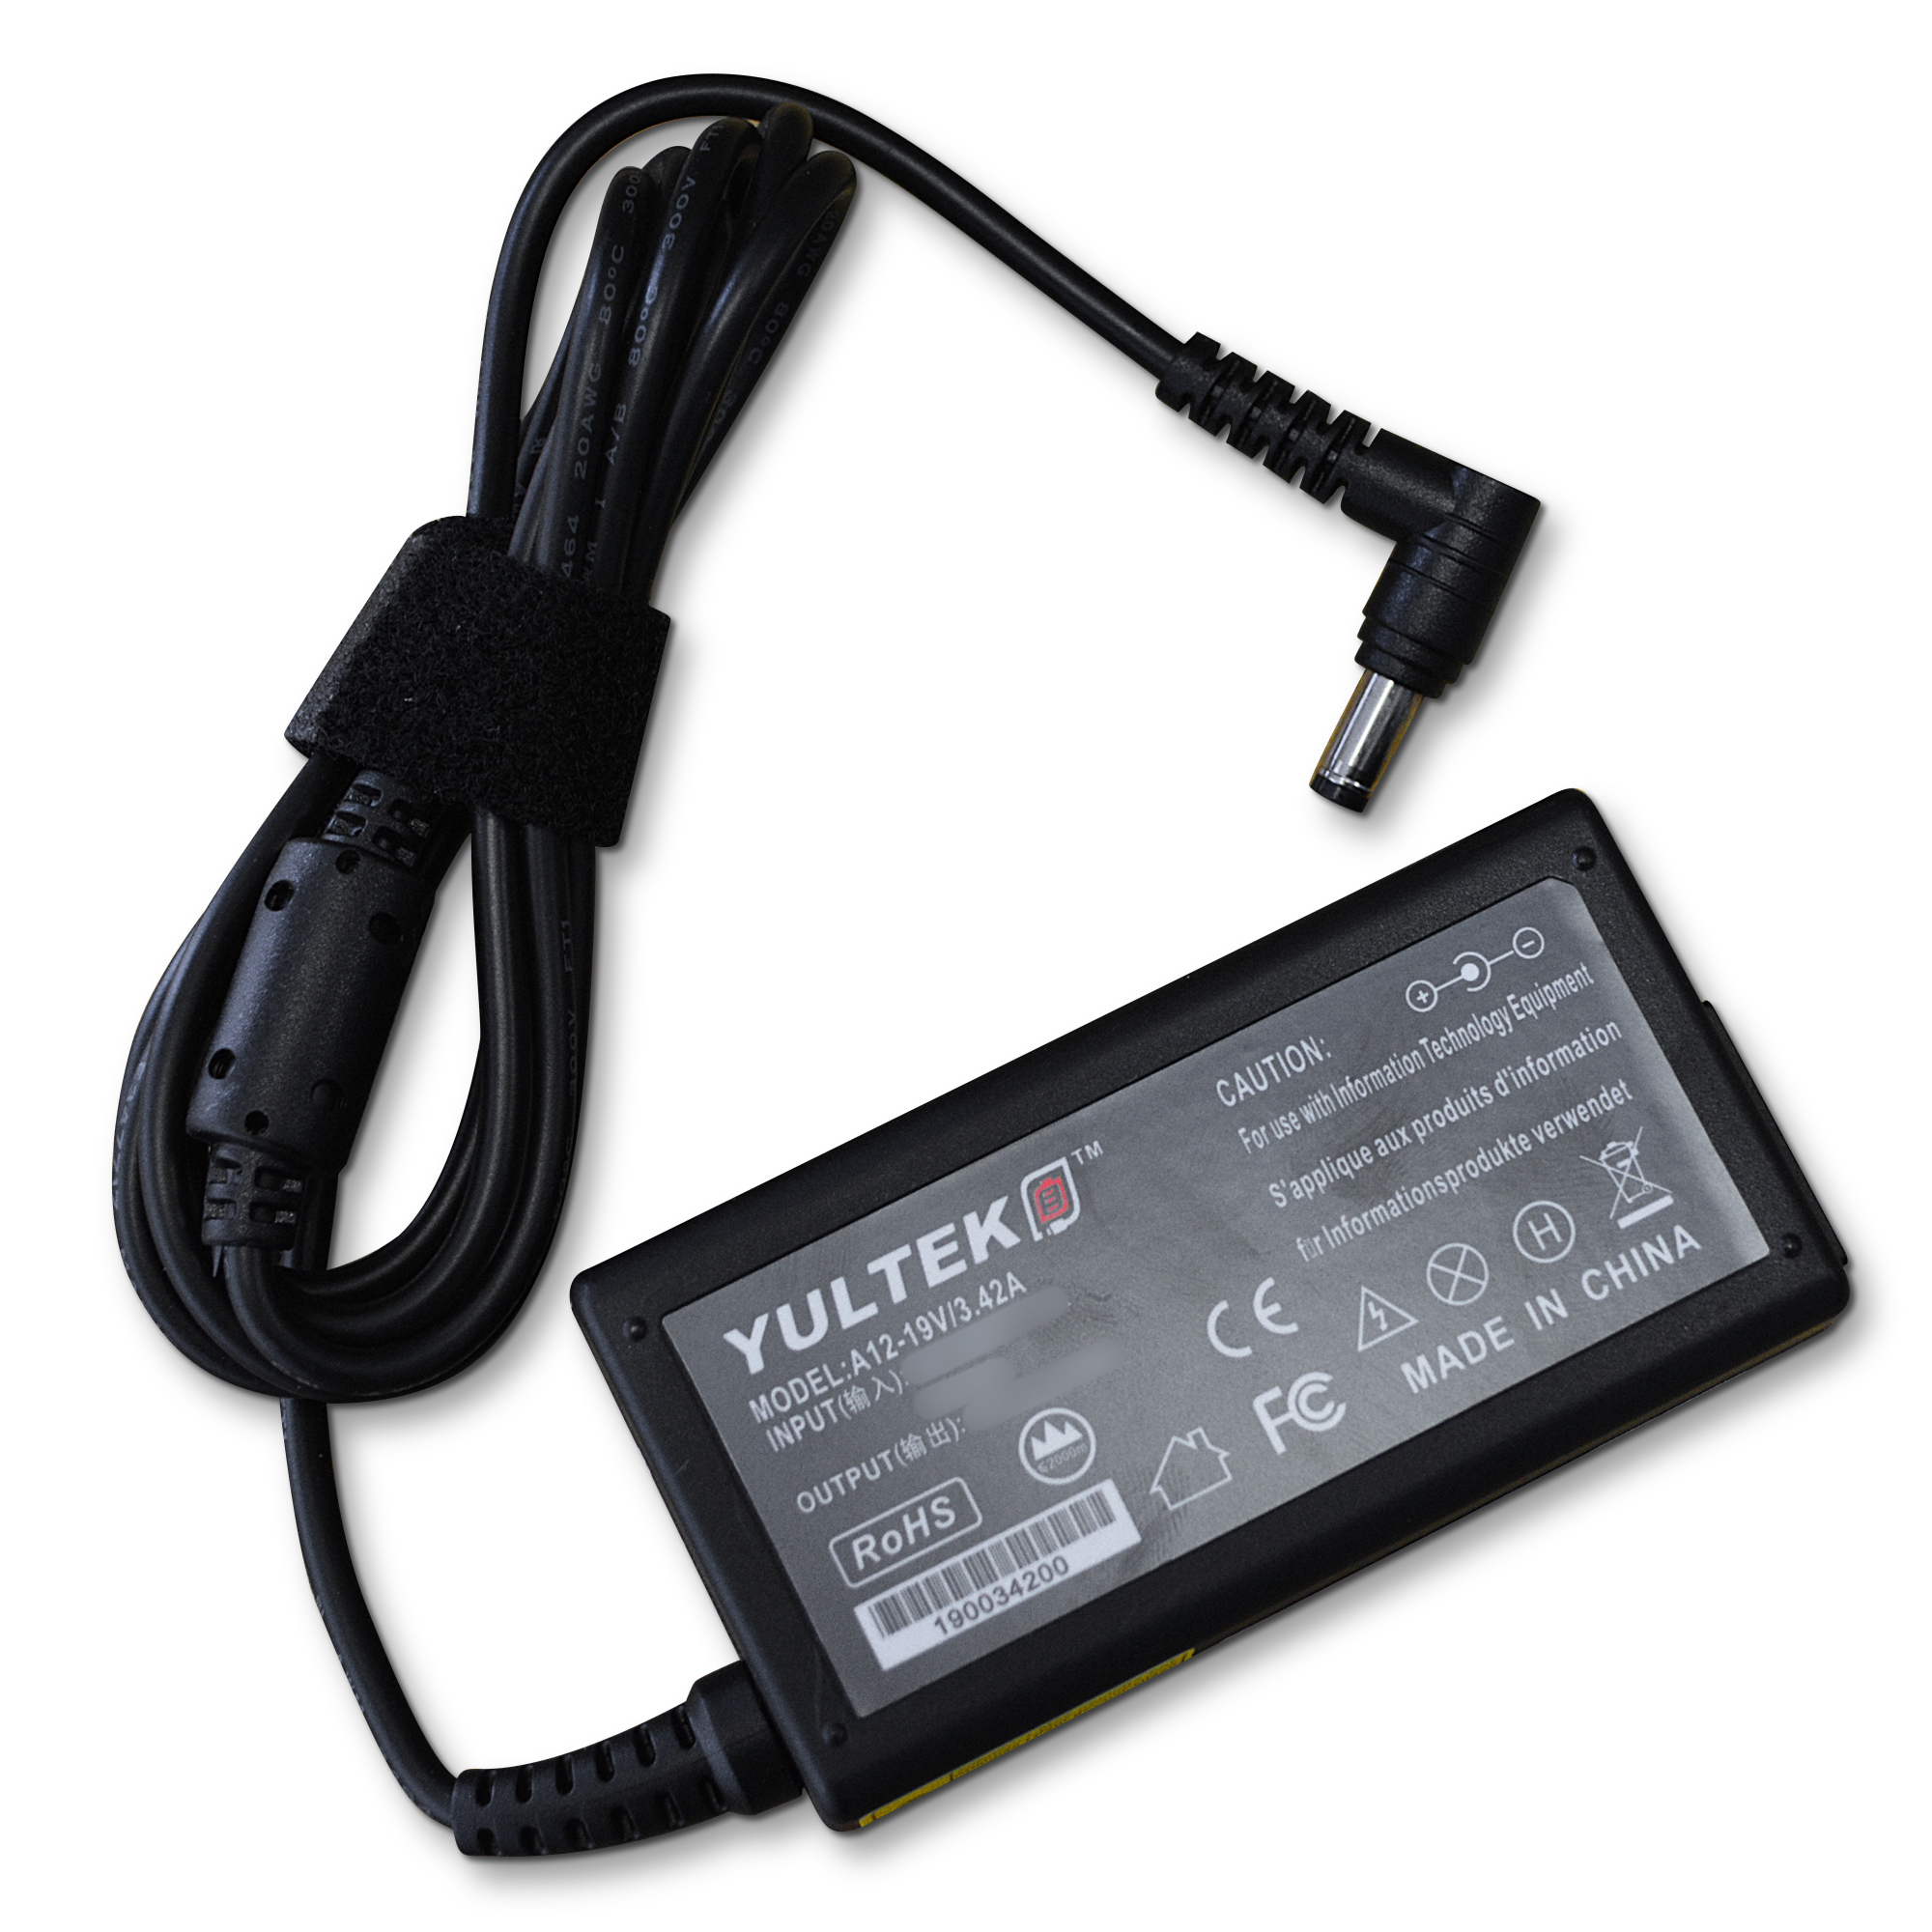 Fujitsu-Siemens Part Number IVF:6032B0013501 Laptop Charger